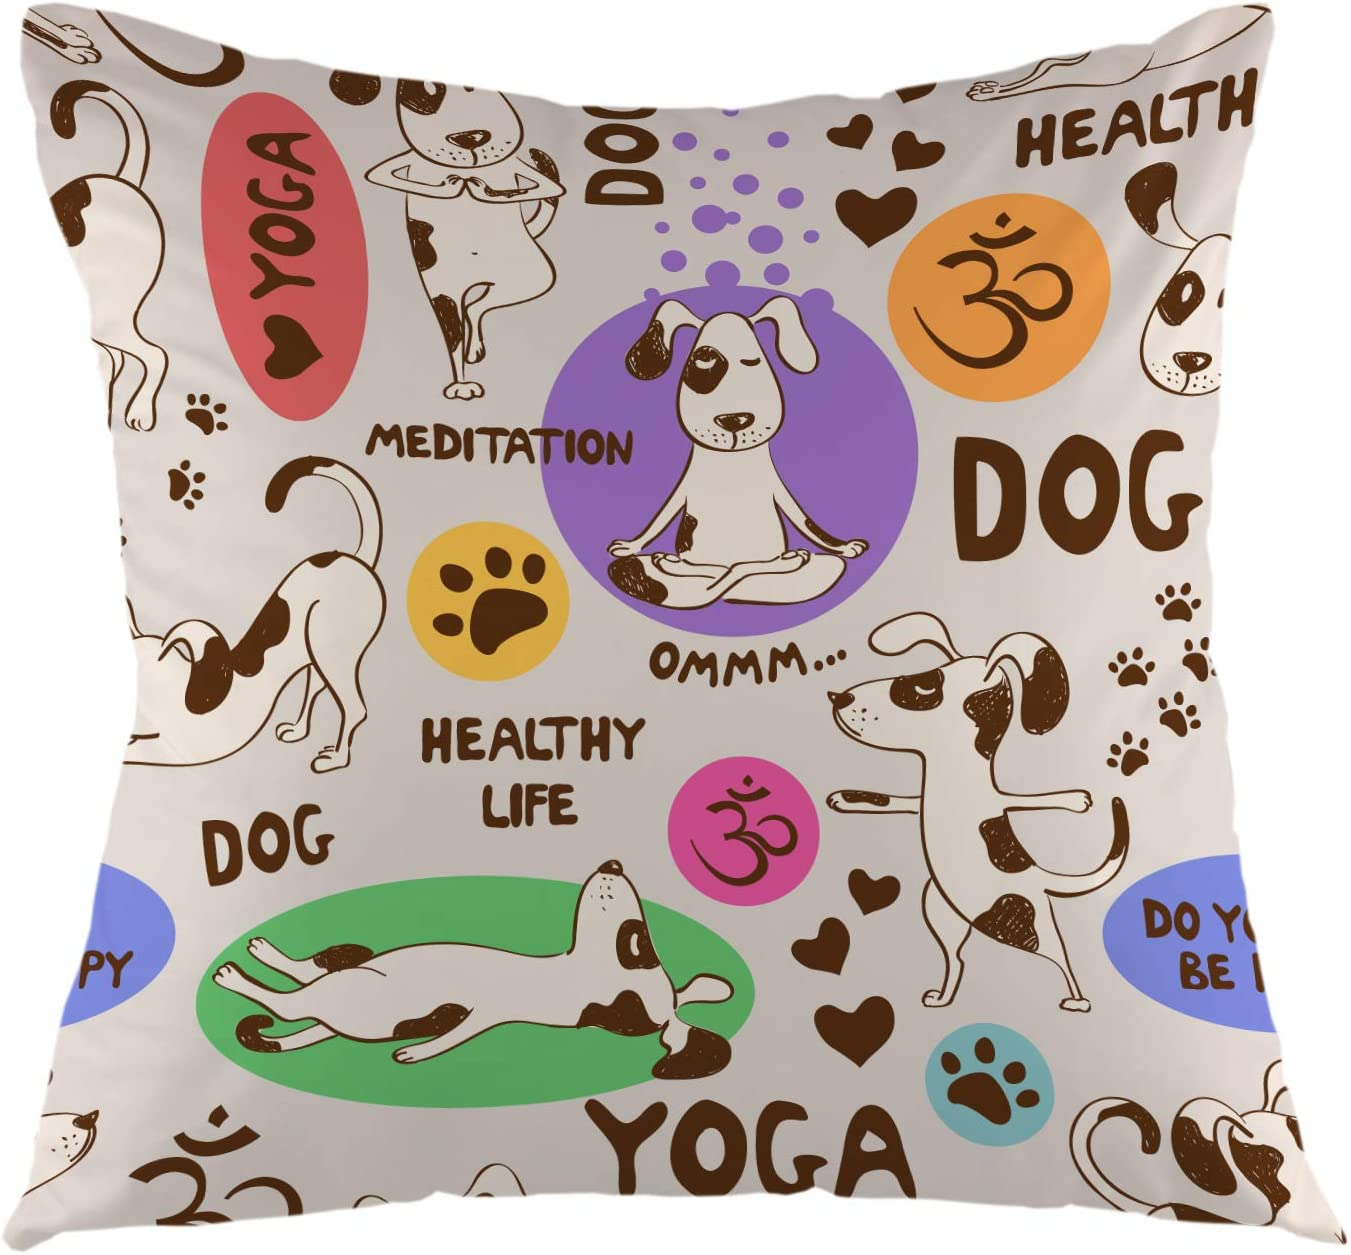 """oFloral Cartoon Dog Decorative Throw Pillow Cover Doing Yoga Position Pillow Case Square Cushion Cover for Sofa Couch Home Car Bedroom Living Room Decor 18"""" x 18"""" Brown Purple"""